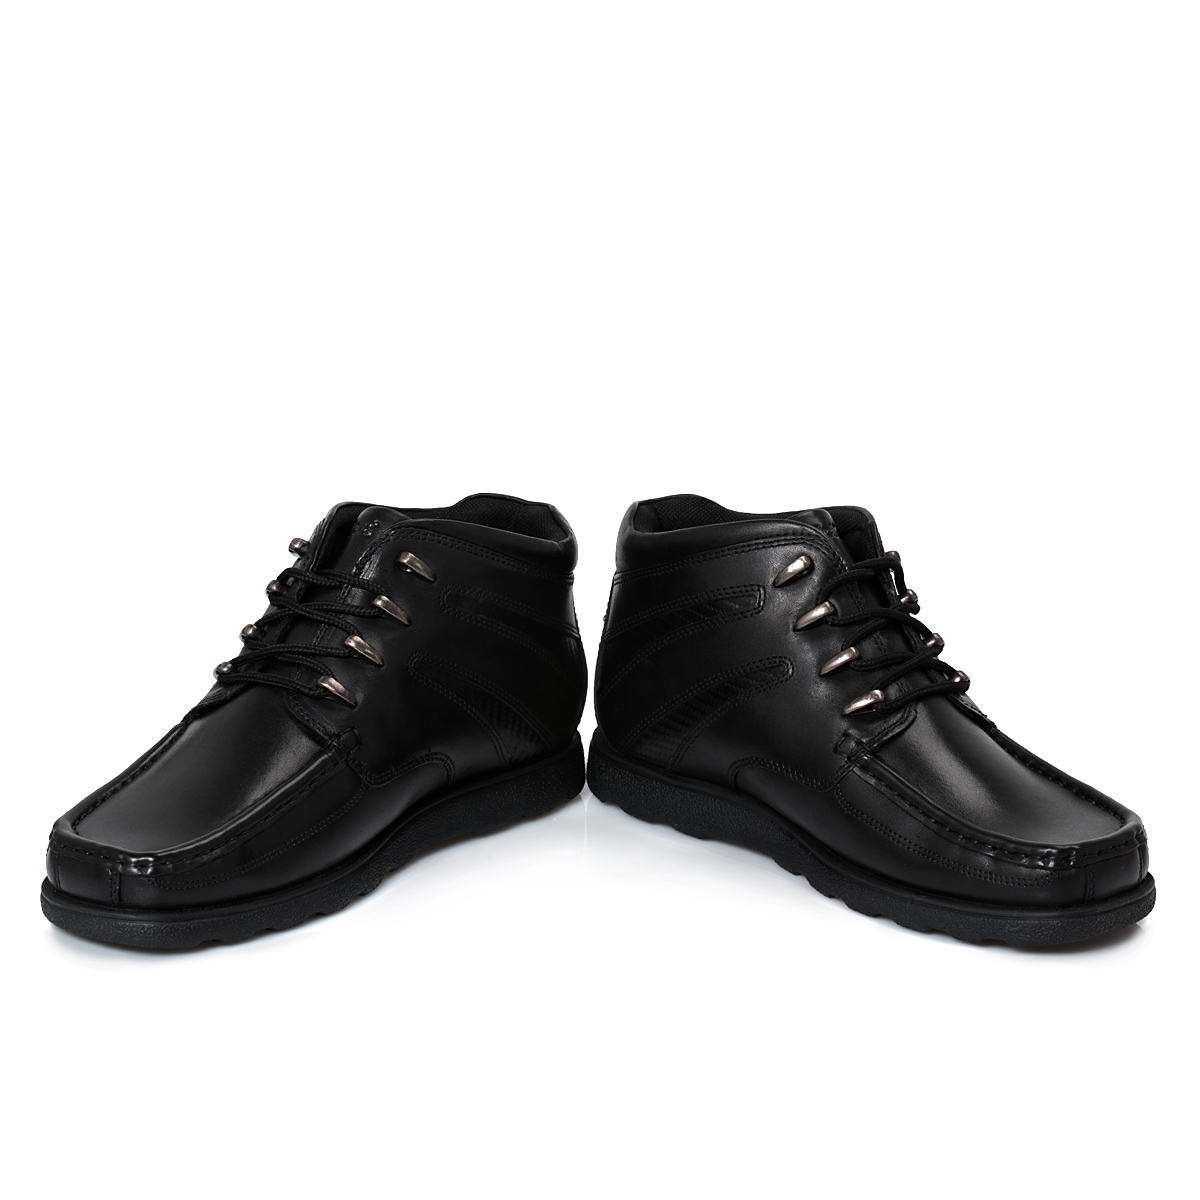 kickers black leather junior lace up boots school